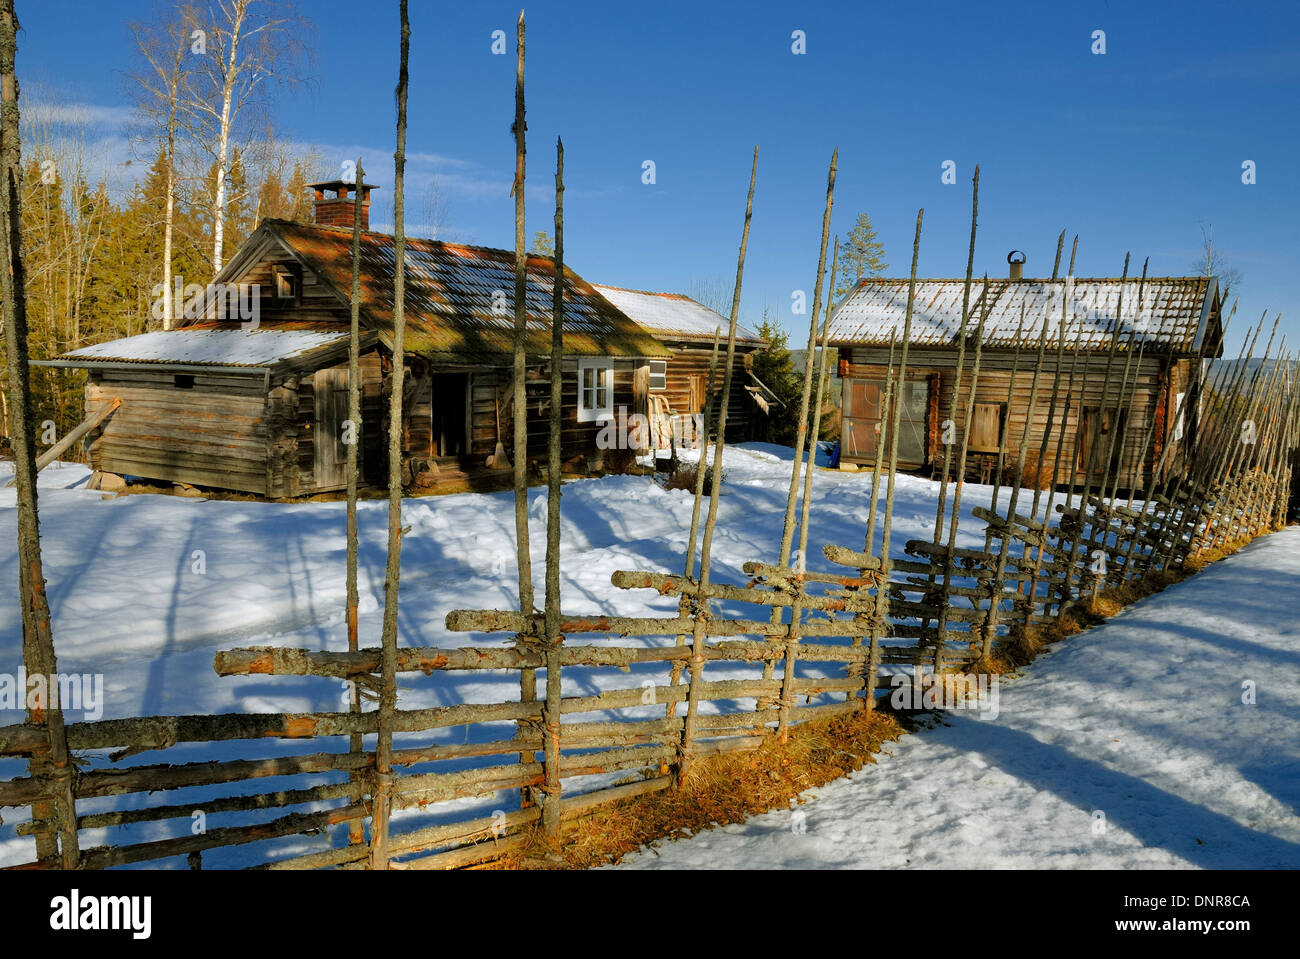 Idyllic winter house - Stock Image